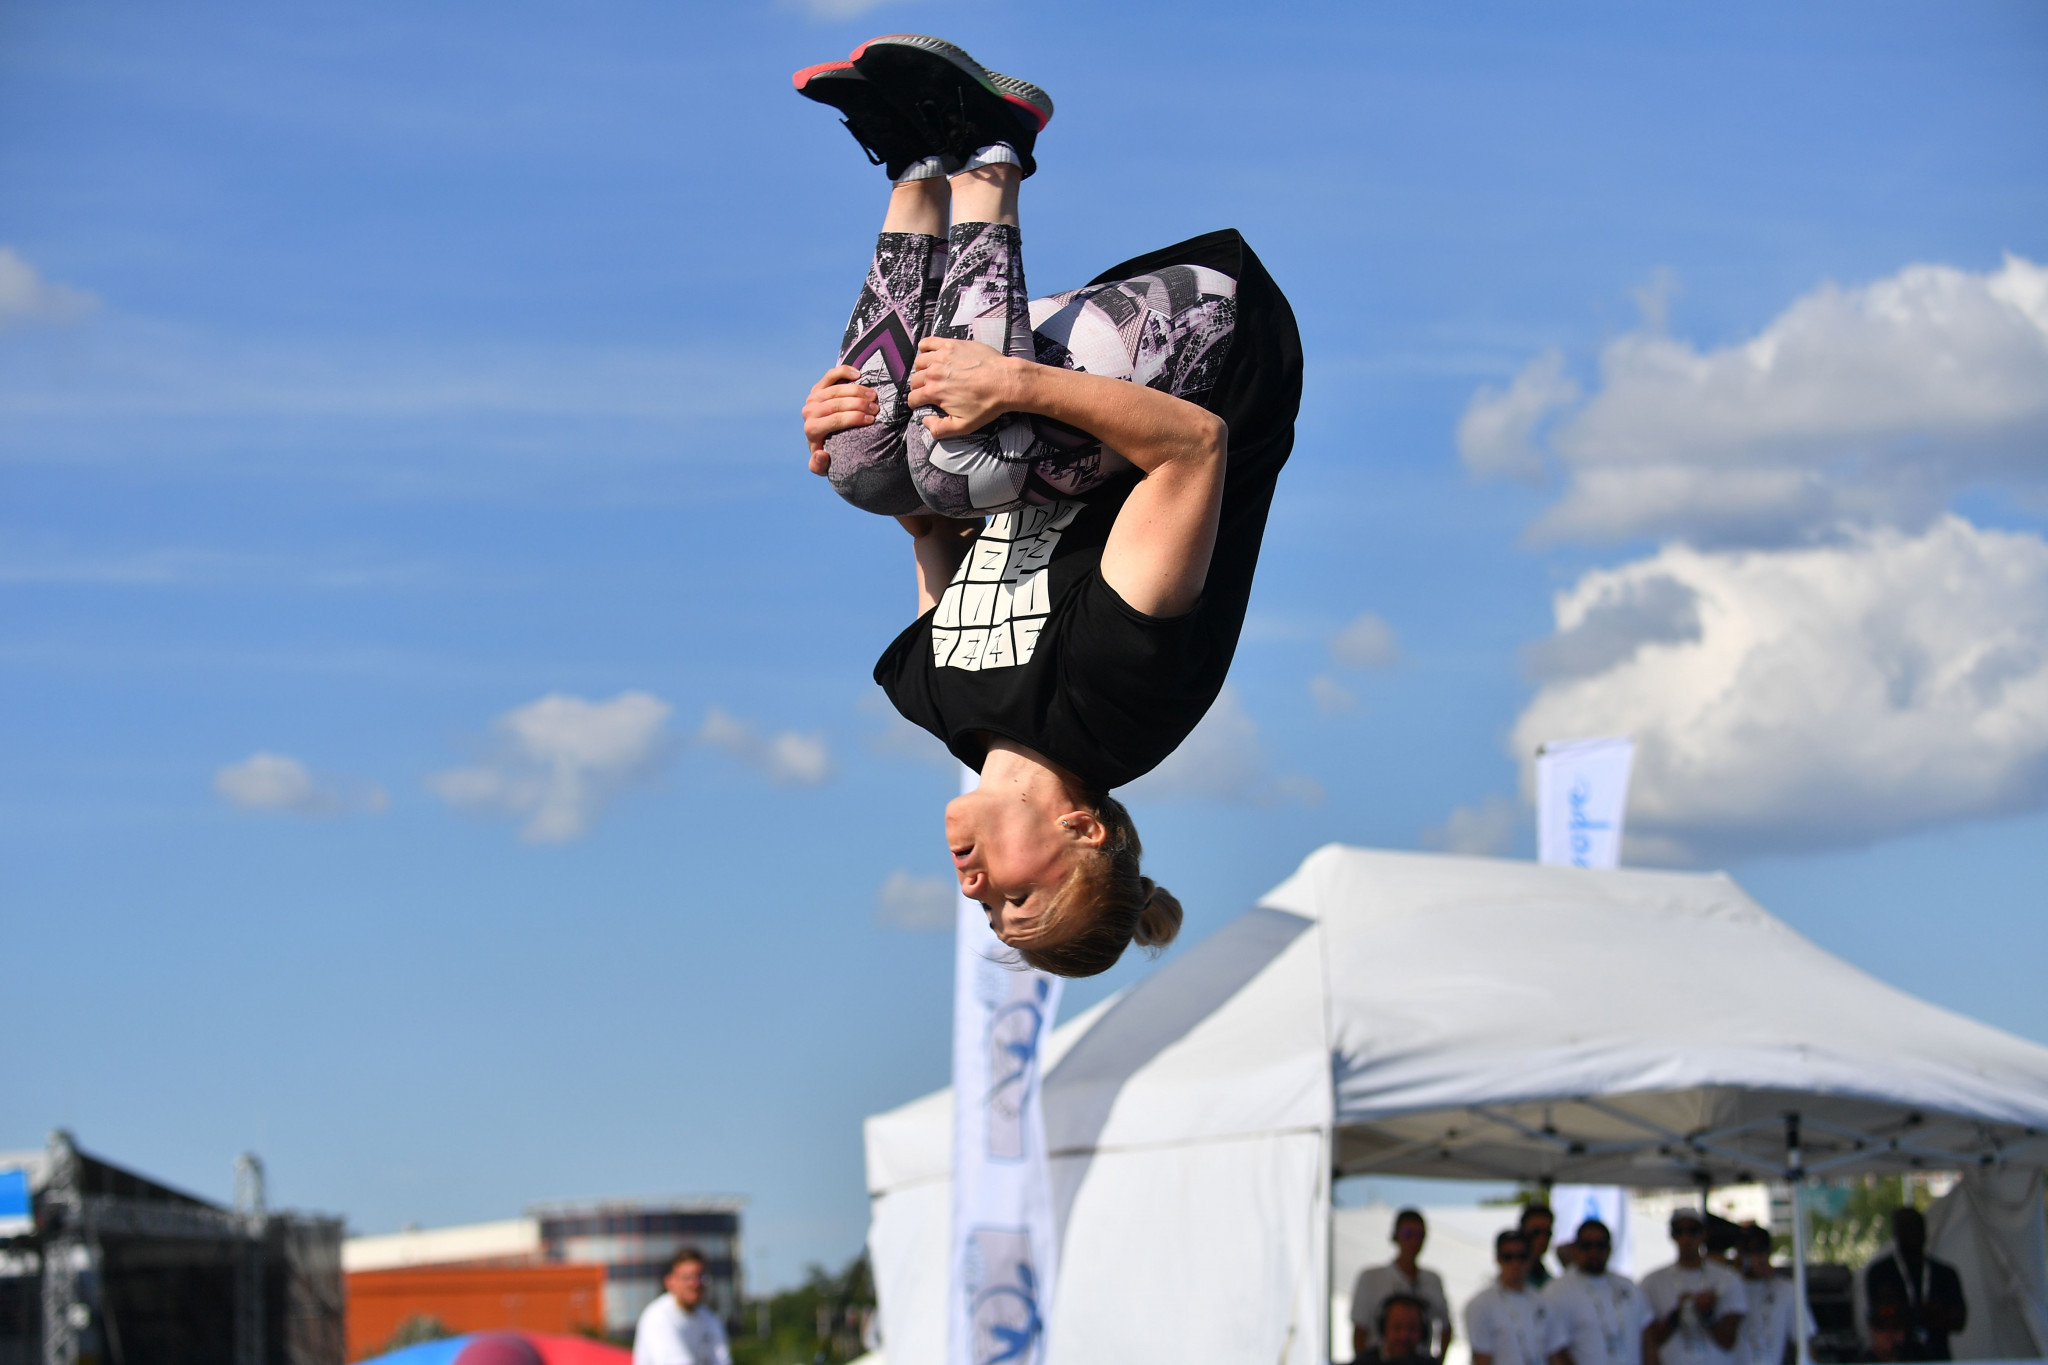 FIG confirms postponement of Parkour World Championships for second time